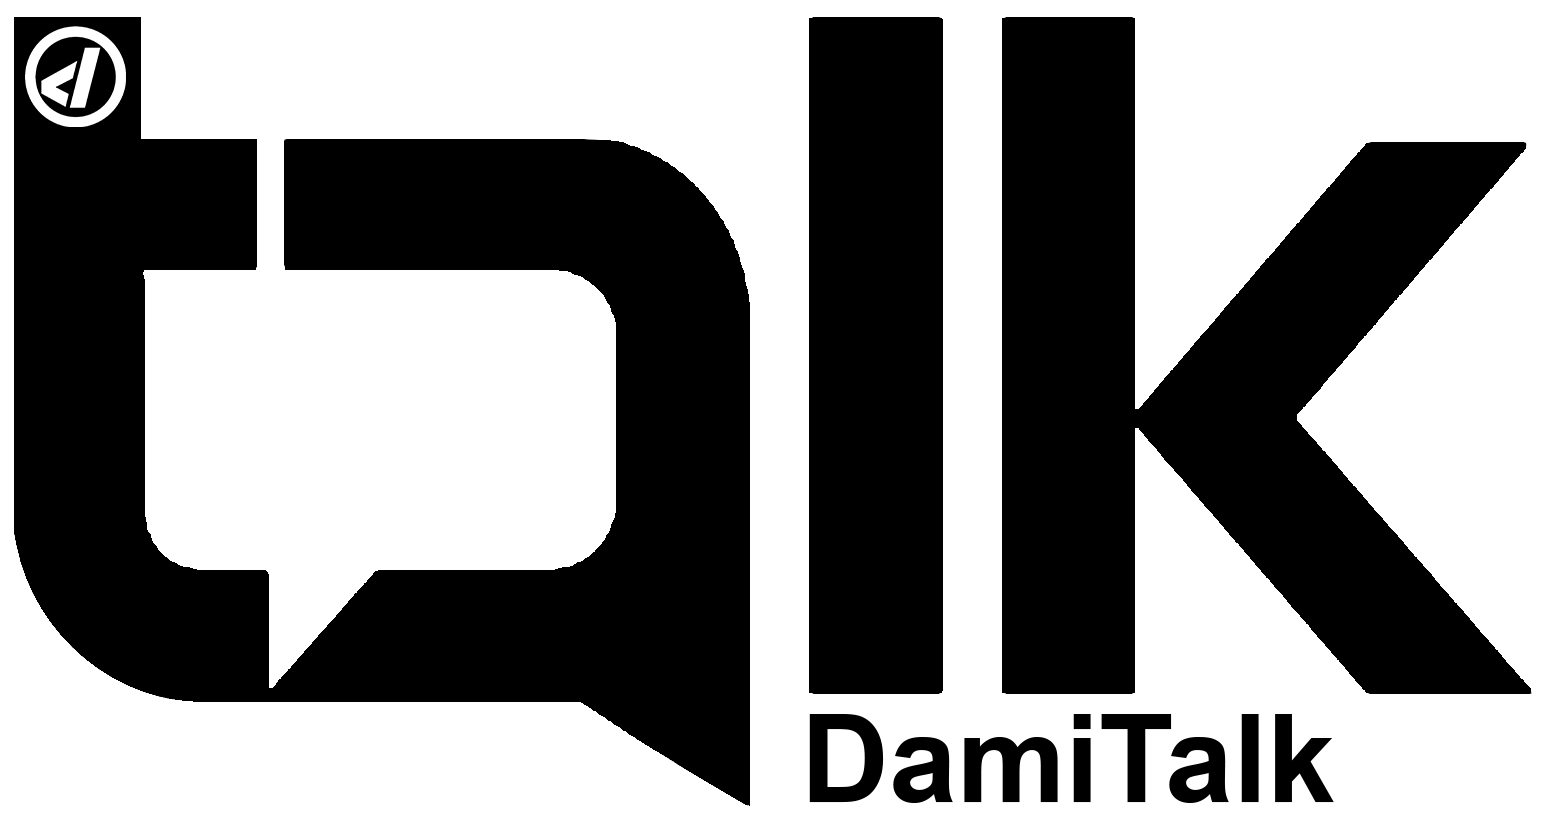 damitalk damisoft talk icon logo 2021